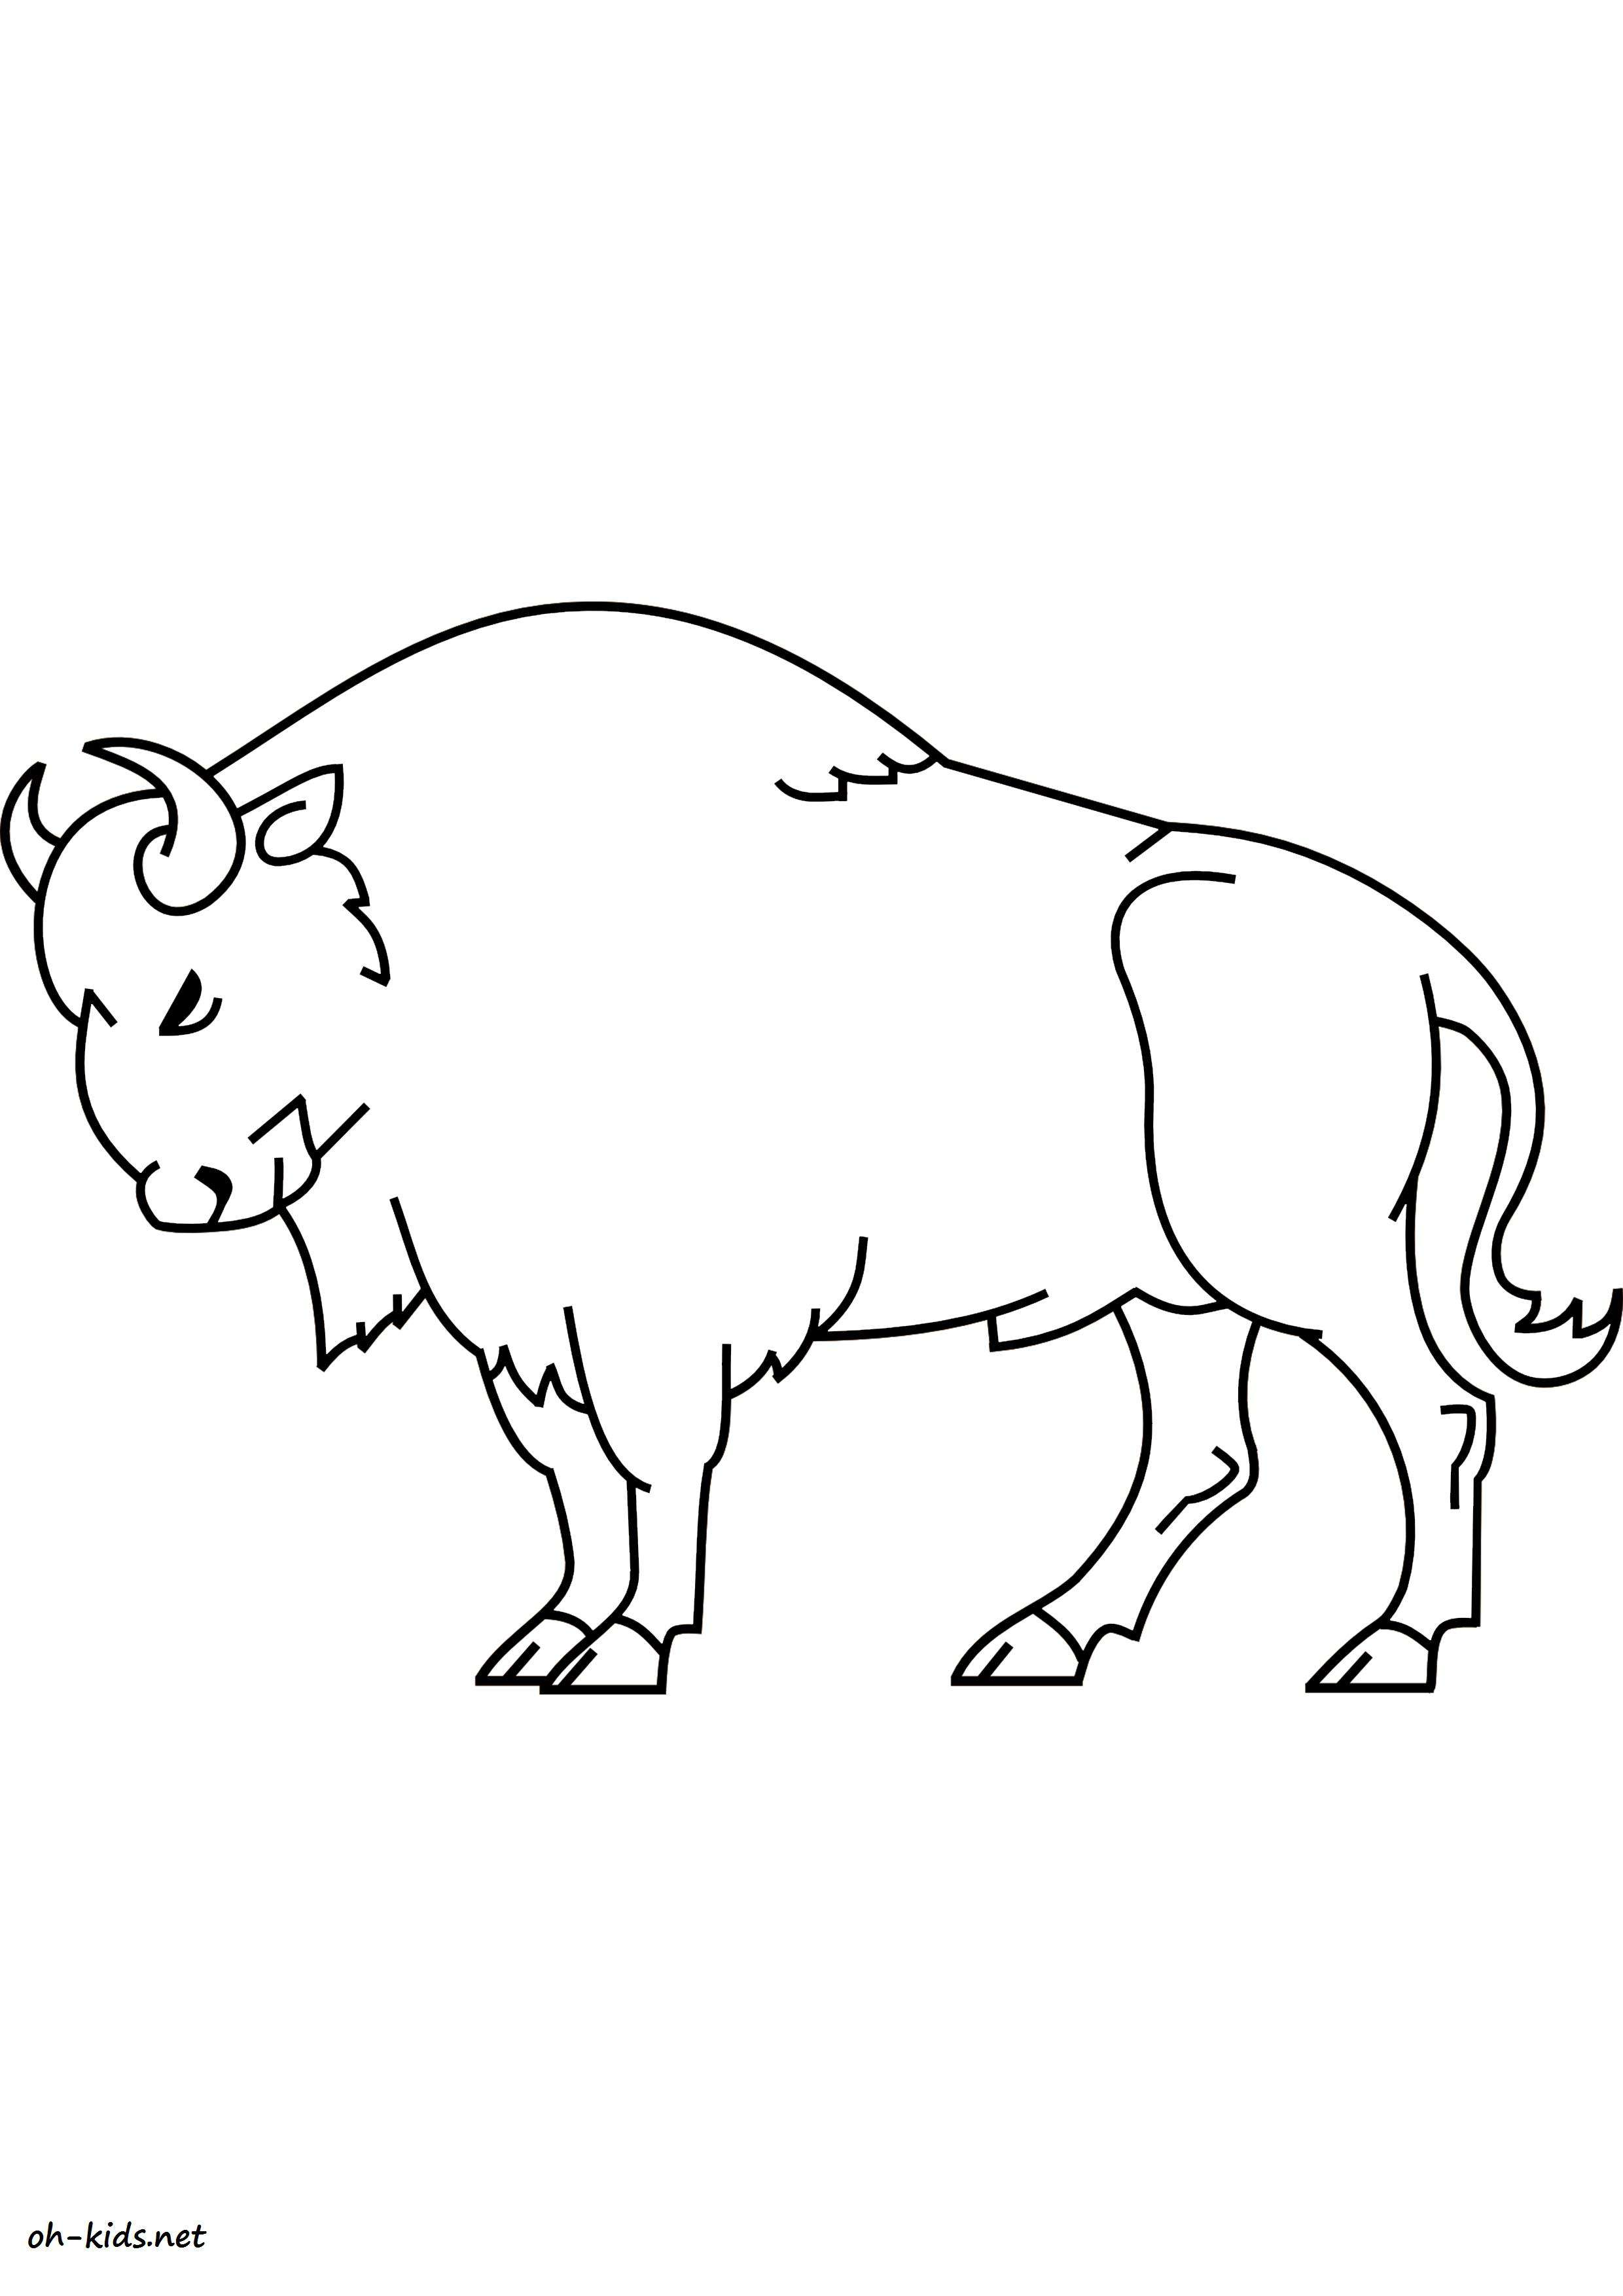 Coloriage bison oh kids fr - Image de coloriage ...